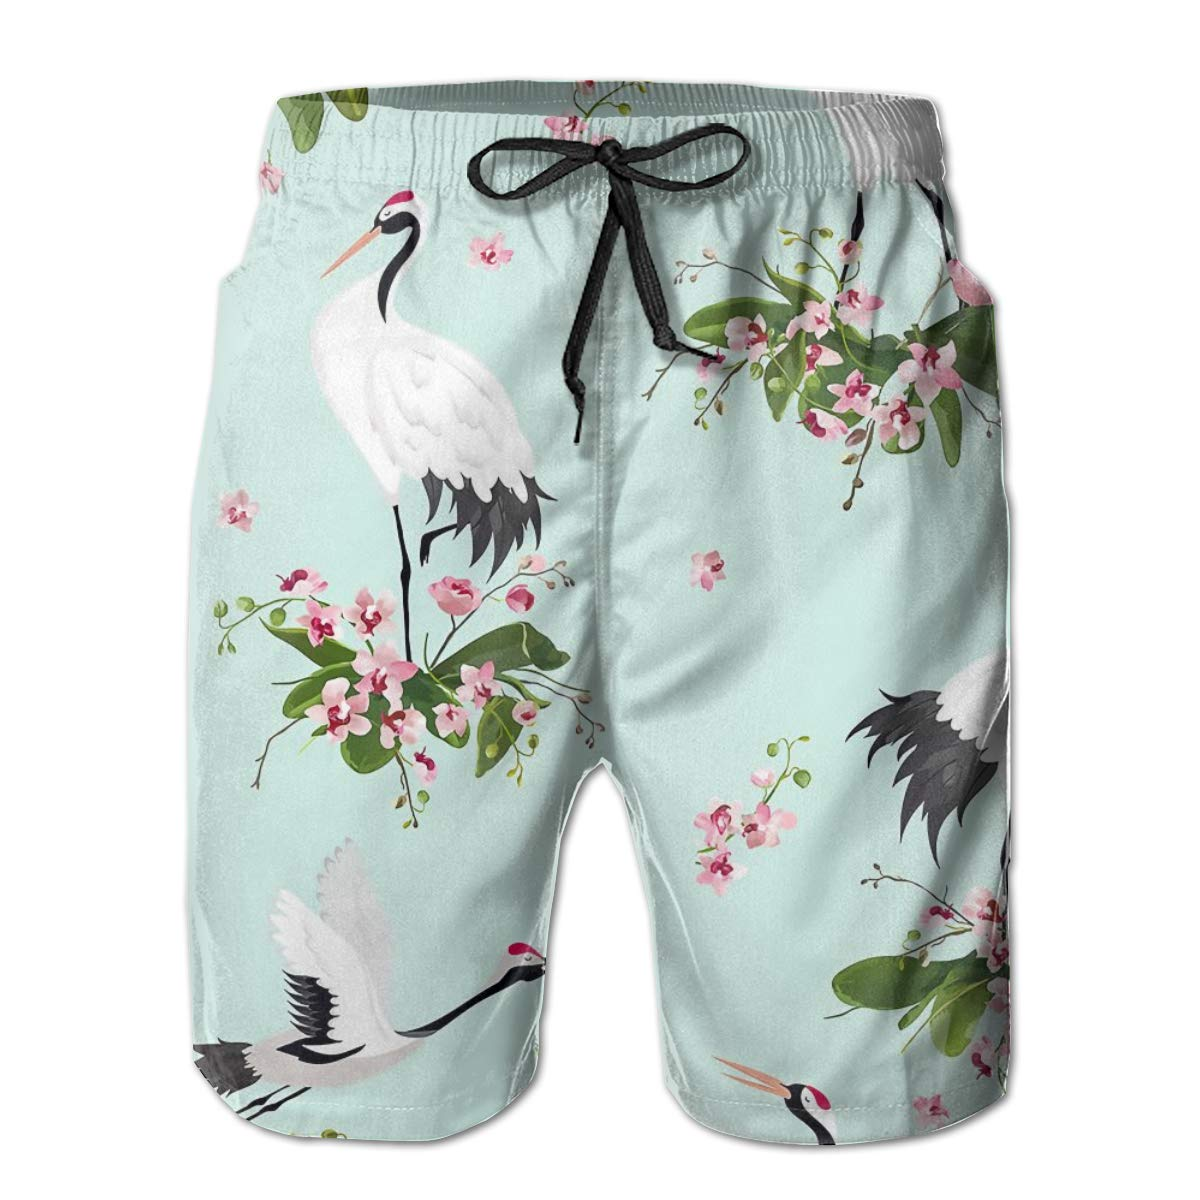 SARA NELL Mens Shorts Japanese Cranes and Flowers Blue Quick Dry Swim Trunks Beach Board Shorts